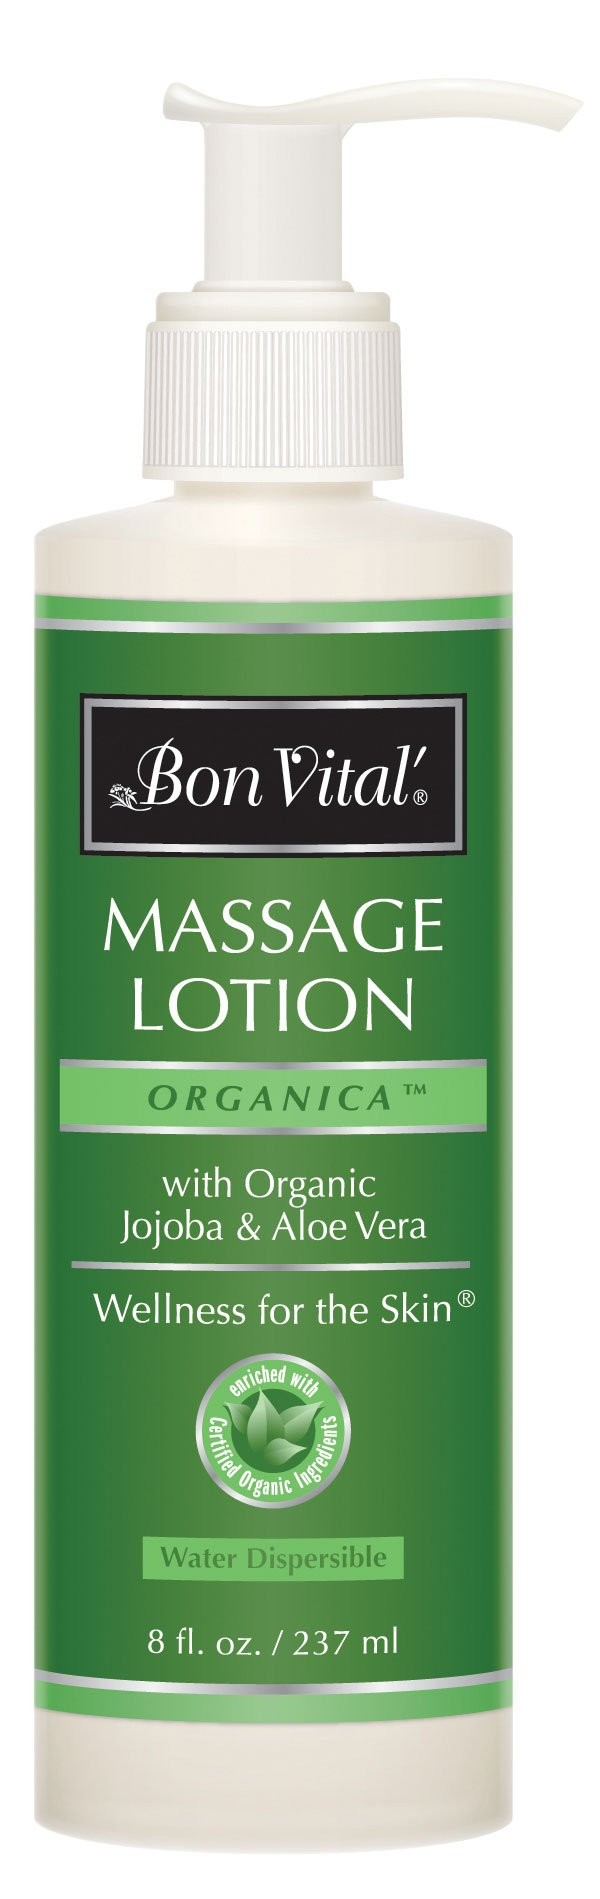 Bon Vital' Organica Massage Lotion Made with Certified Organic Ingredients for an Earth-Friendly & Relaxing Massage, Natural Moisturizer Perfect for Relaxing Back & Neck Massages, 8 Ounce Pump Bottle